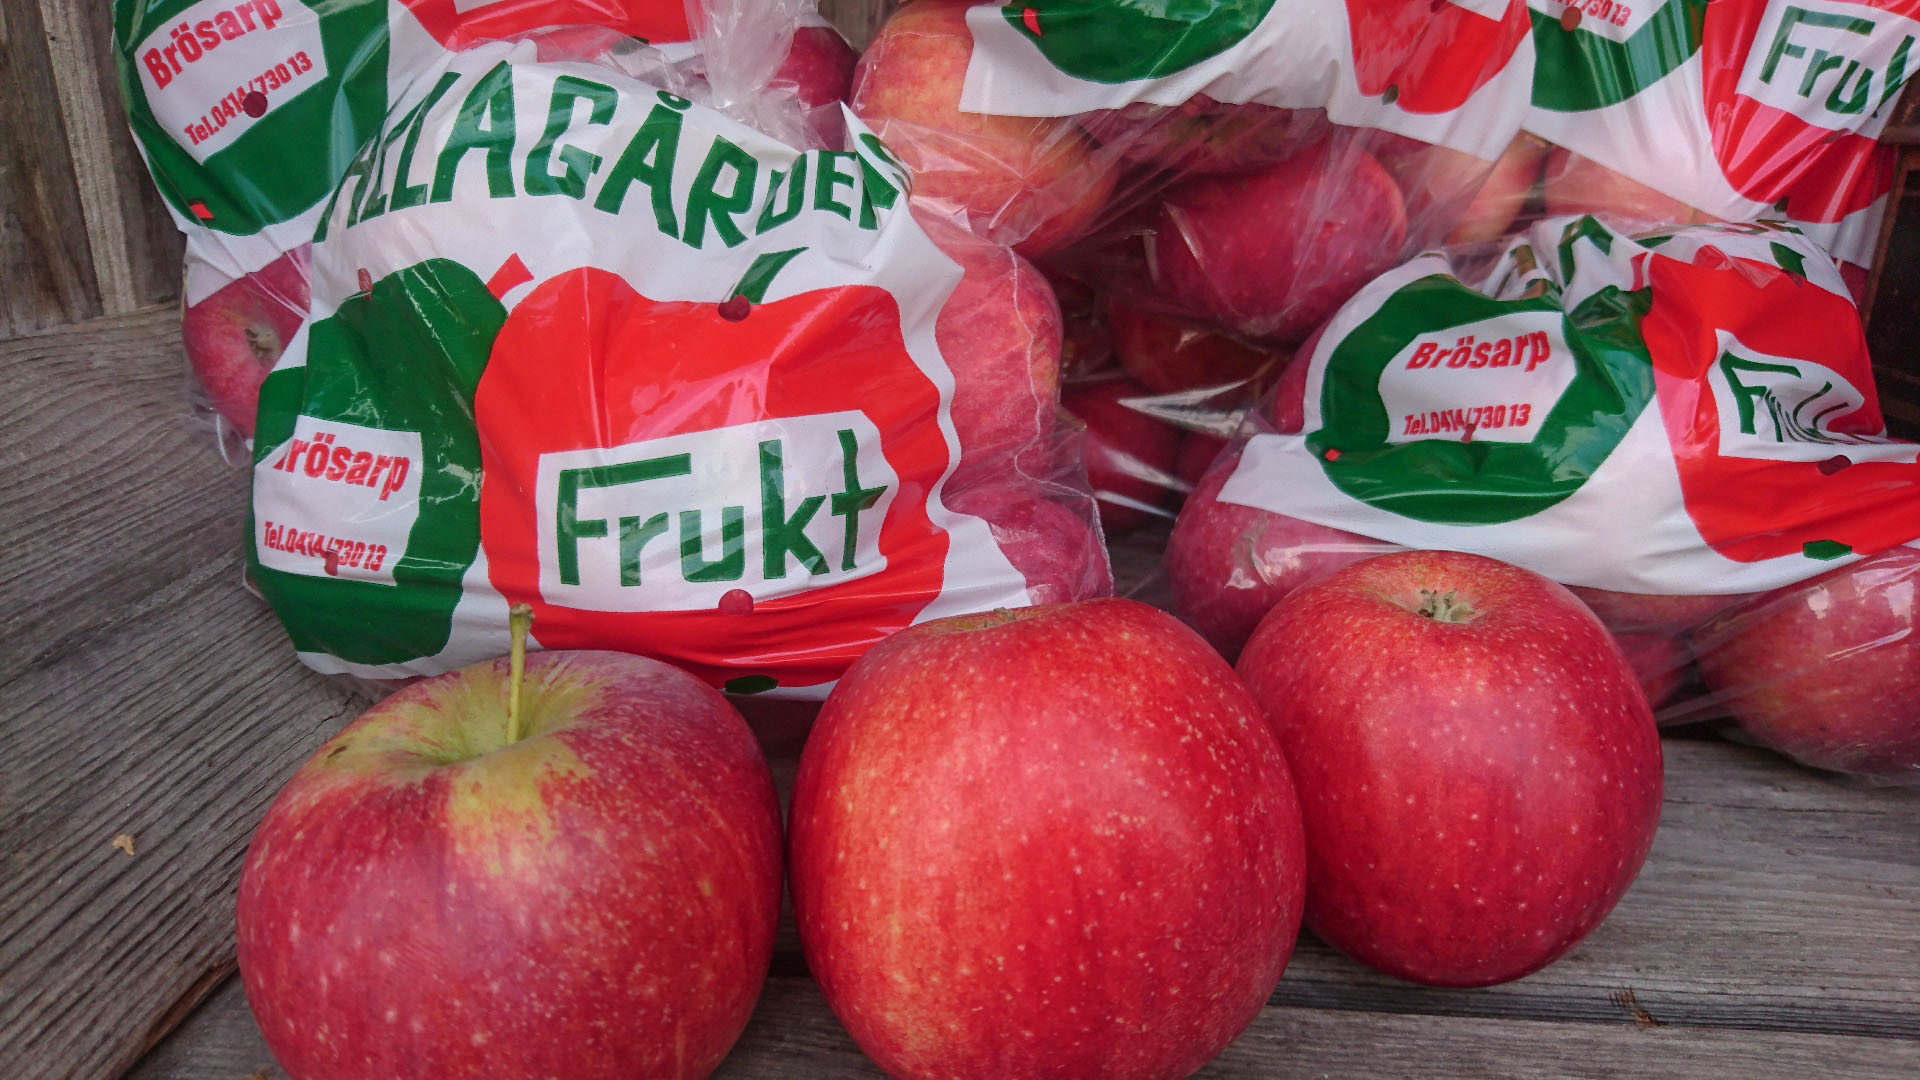 Källagården's fruit - apples in the farm stand.